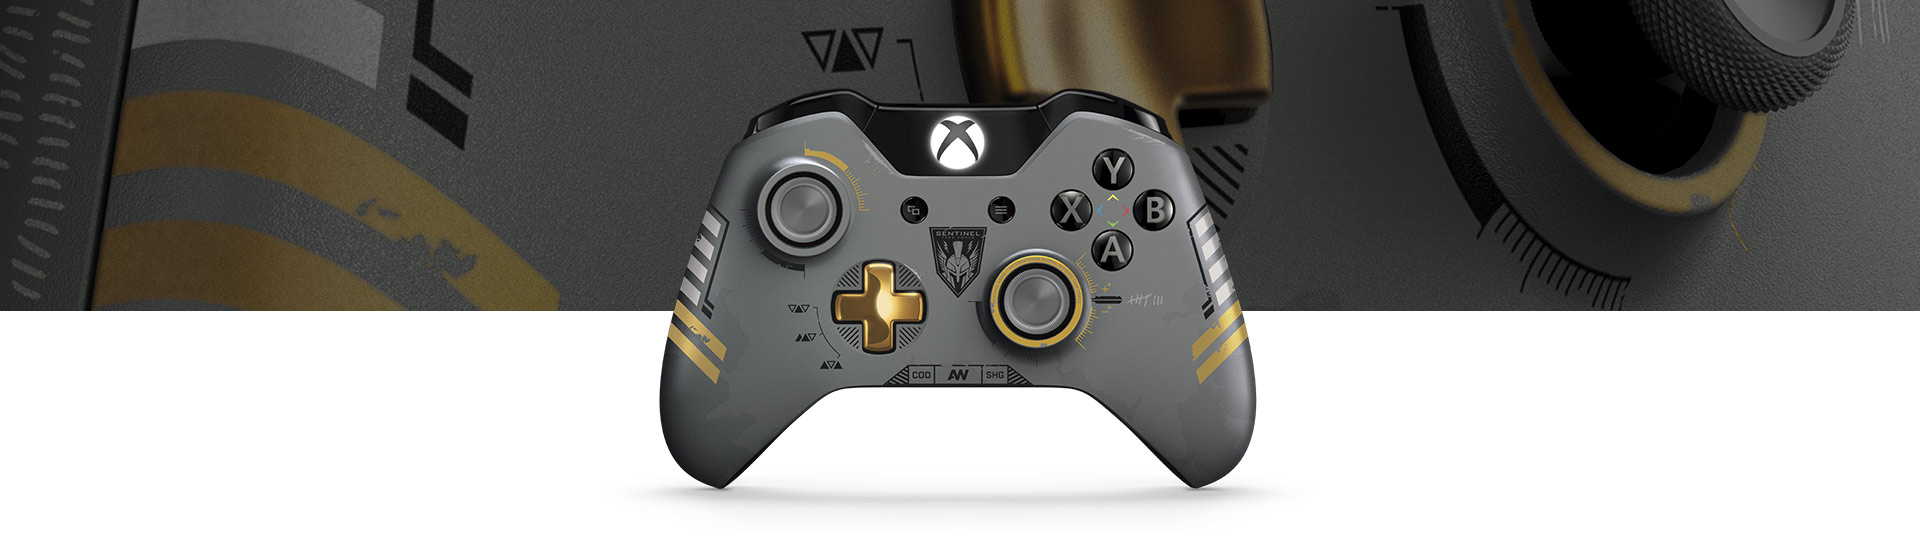 Call of Duty Advanced Warfare Controller